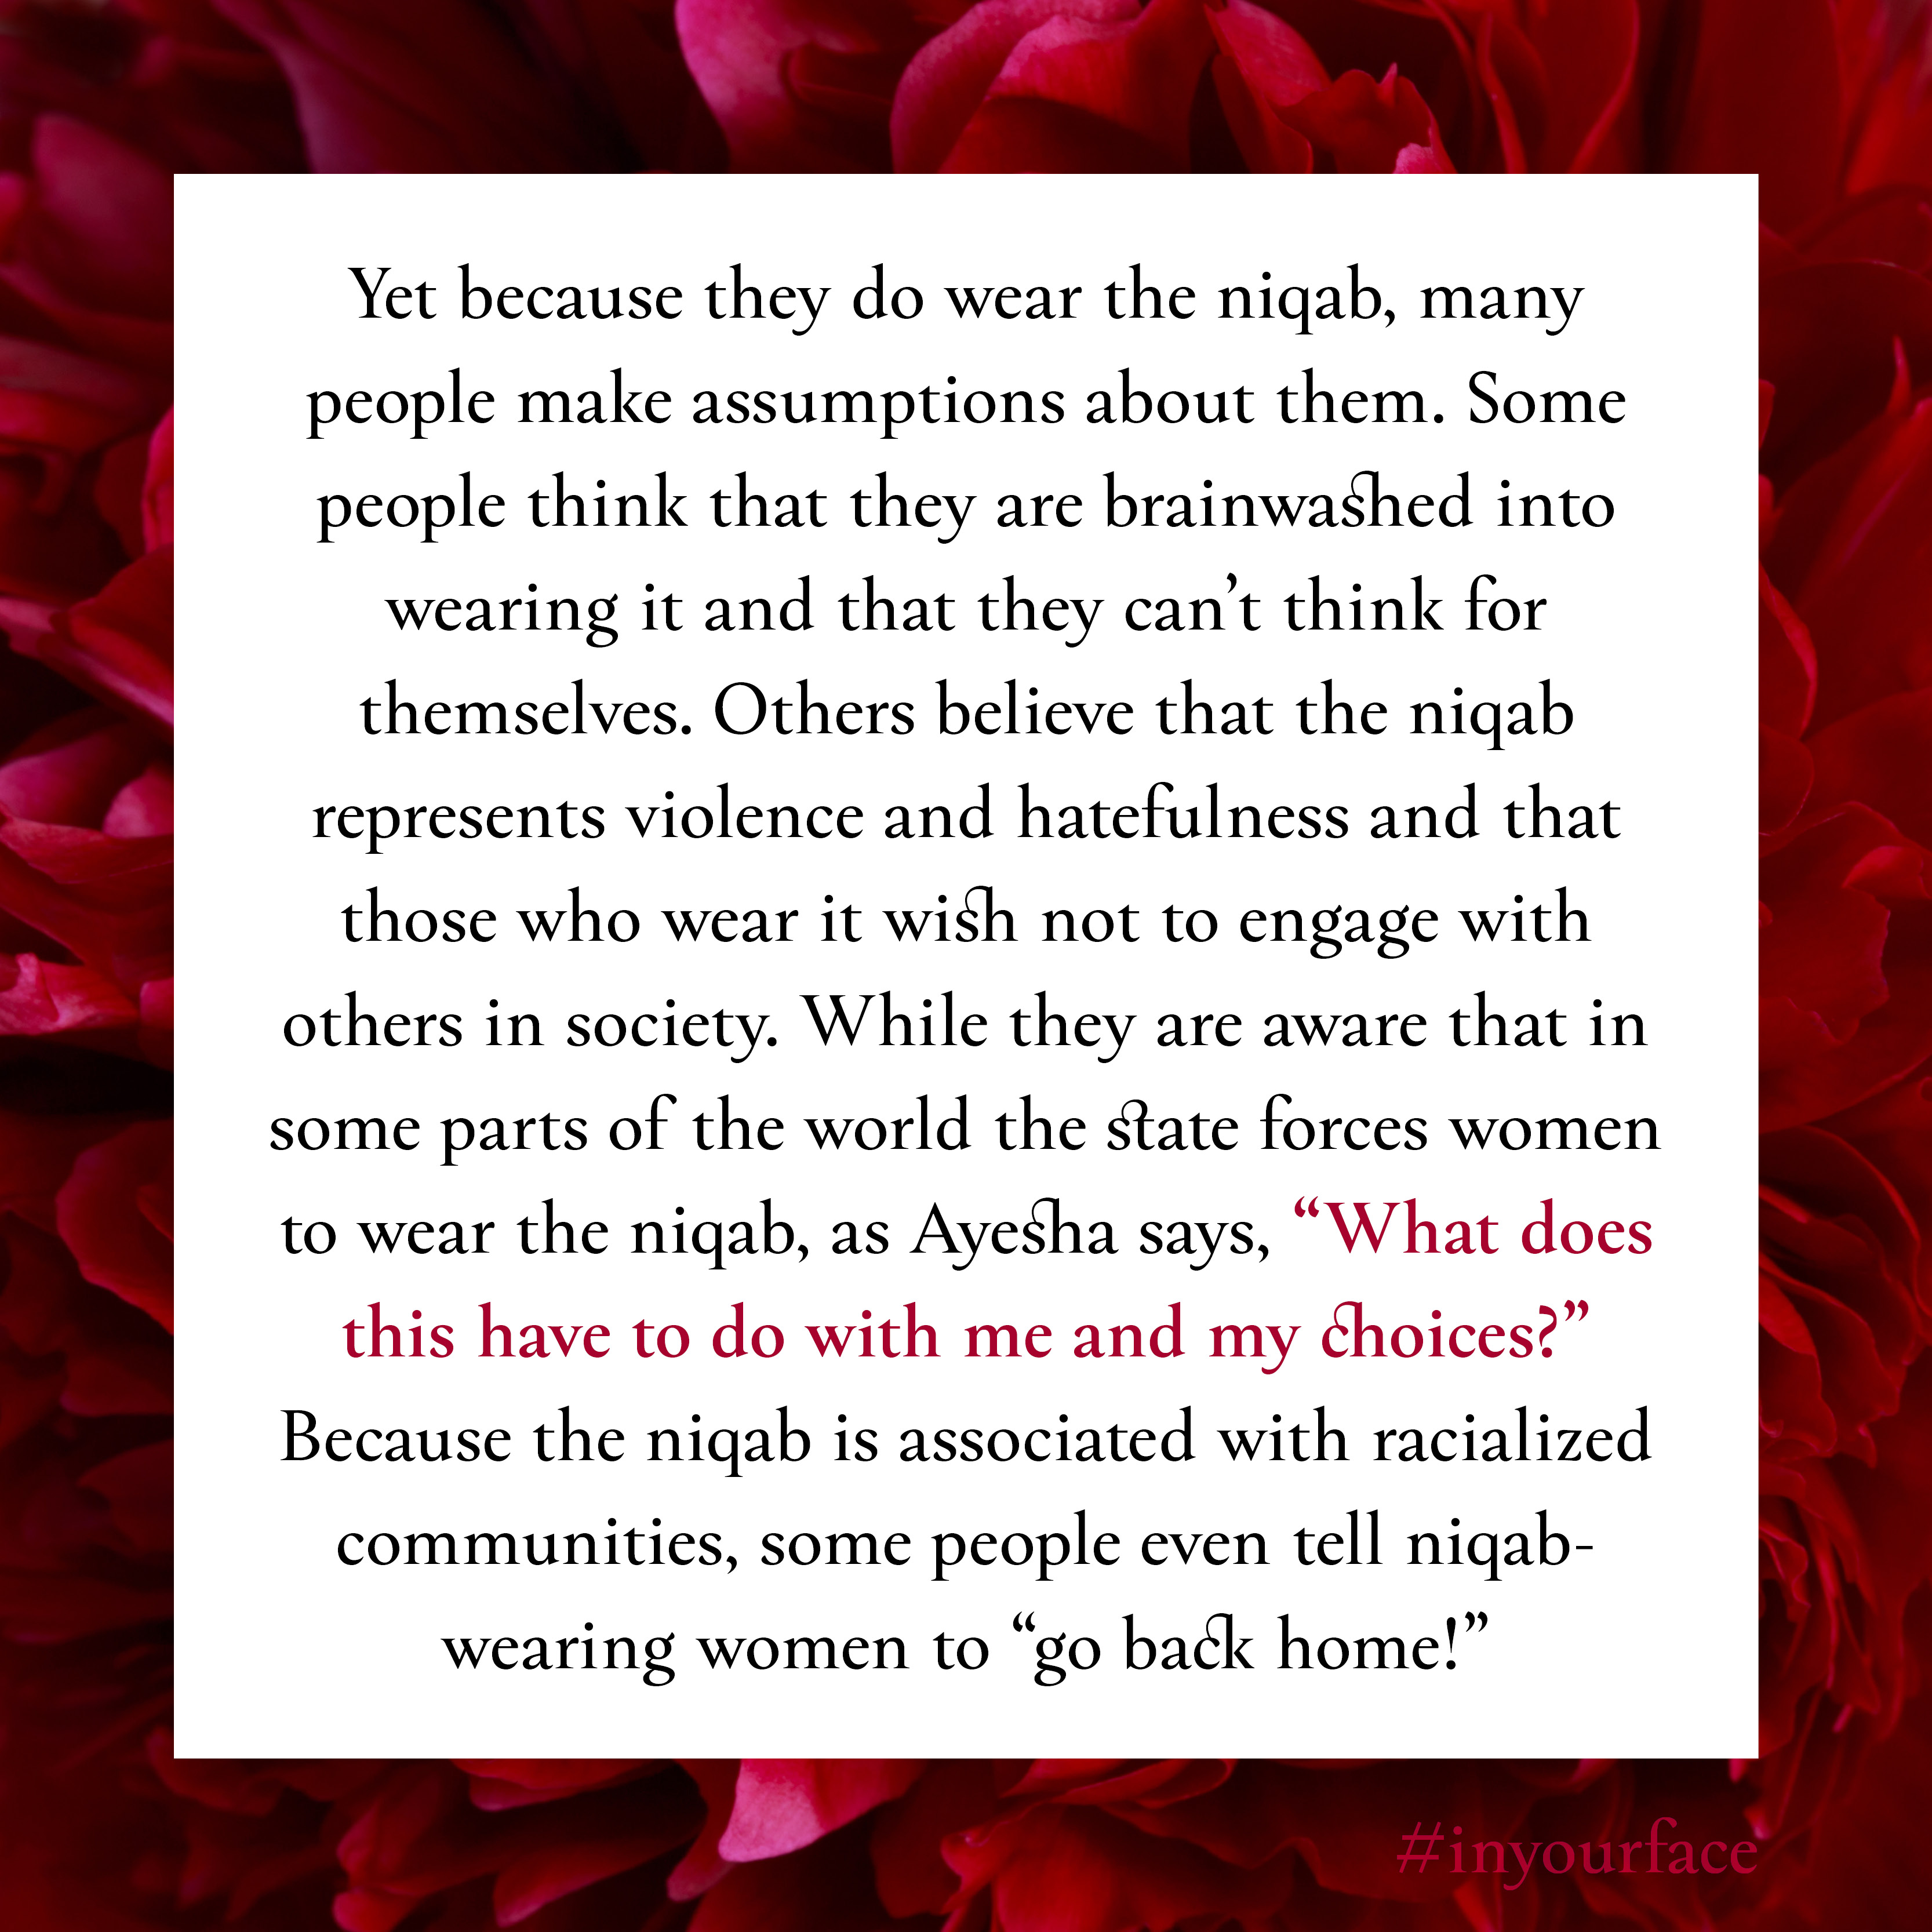 """Excerpt from In Your Face by Natasha Bakht. It reads: """"Yet because they do wear the niqab, many people make assumptions about them. Some people think that they are brainwashed into wearing it and that they can't think for themselves. Others believe that the niqab represents violence and hatefulness and that those who wear it wish not to engage with others in society. While they are aware that in some parts of the world the state forces women to wear the niqab, as Ayesha says, """"What does this have to do with me and my choices?"""" Because the niqab is associated with racialized communities, some people even tell niqab-wearing women to """"go back home!"""""""""""